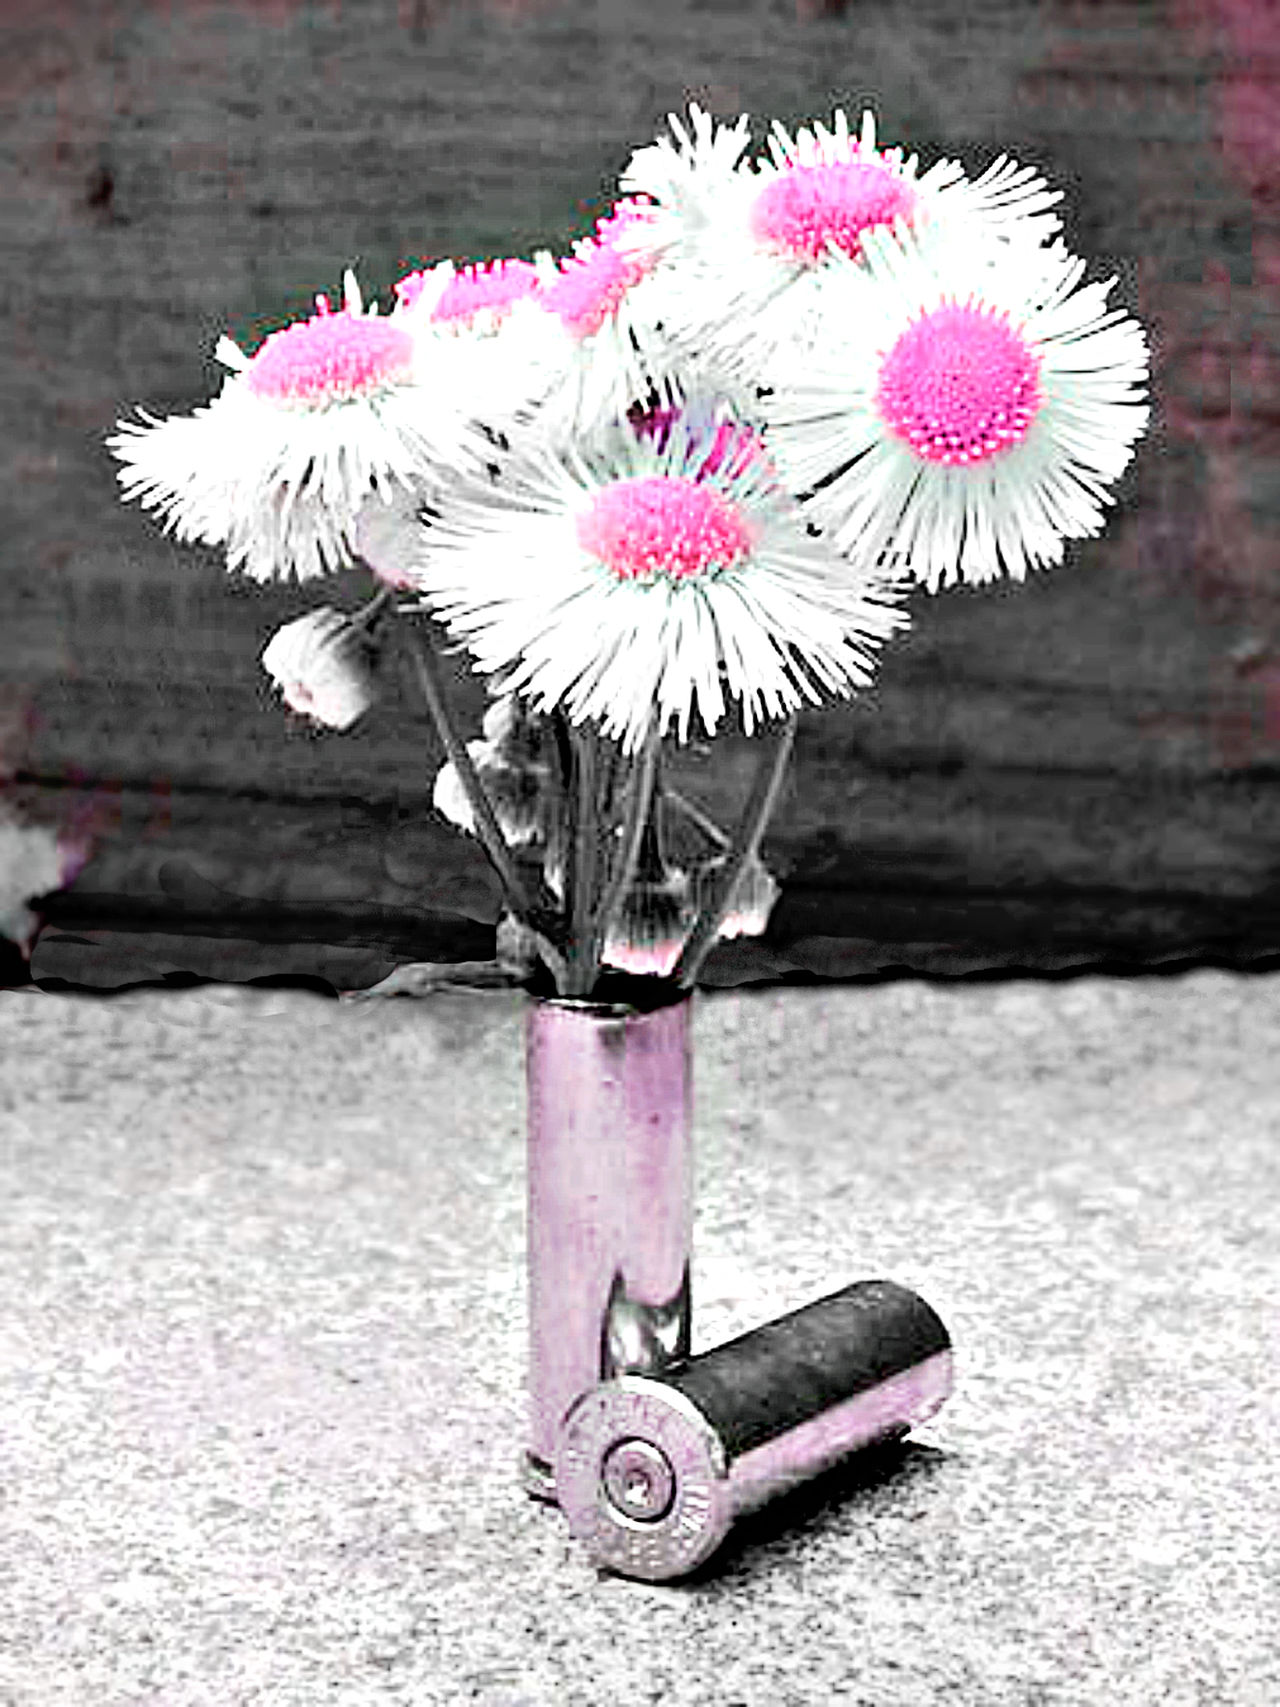 """Strength is the ability to not do to others only the things that were done to you."" C. Joybell C. Beautiful Beauty In Nature Beauty In Nature Boss Lady ! ❤ Close-up Don't Let That Pretty Face Fool You, I Roll Like A Boss! Flower Flower Head Focus On Foreground Fragility Freshness Growth Gun Lady Guns JustJennifer@TruthIsBeauty Like A Boss Nature No People Petal Pink Color Safe And Sound Still Life Tiny Flowers TruthIsBeauty Photographic Art 🌷 TruthIsBeauty 💯"